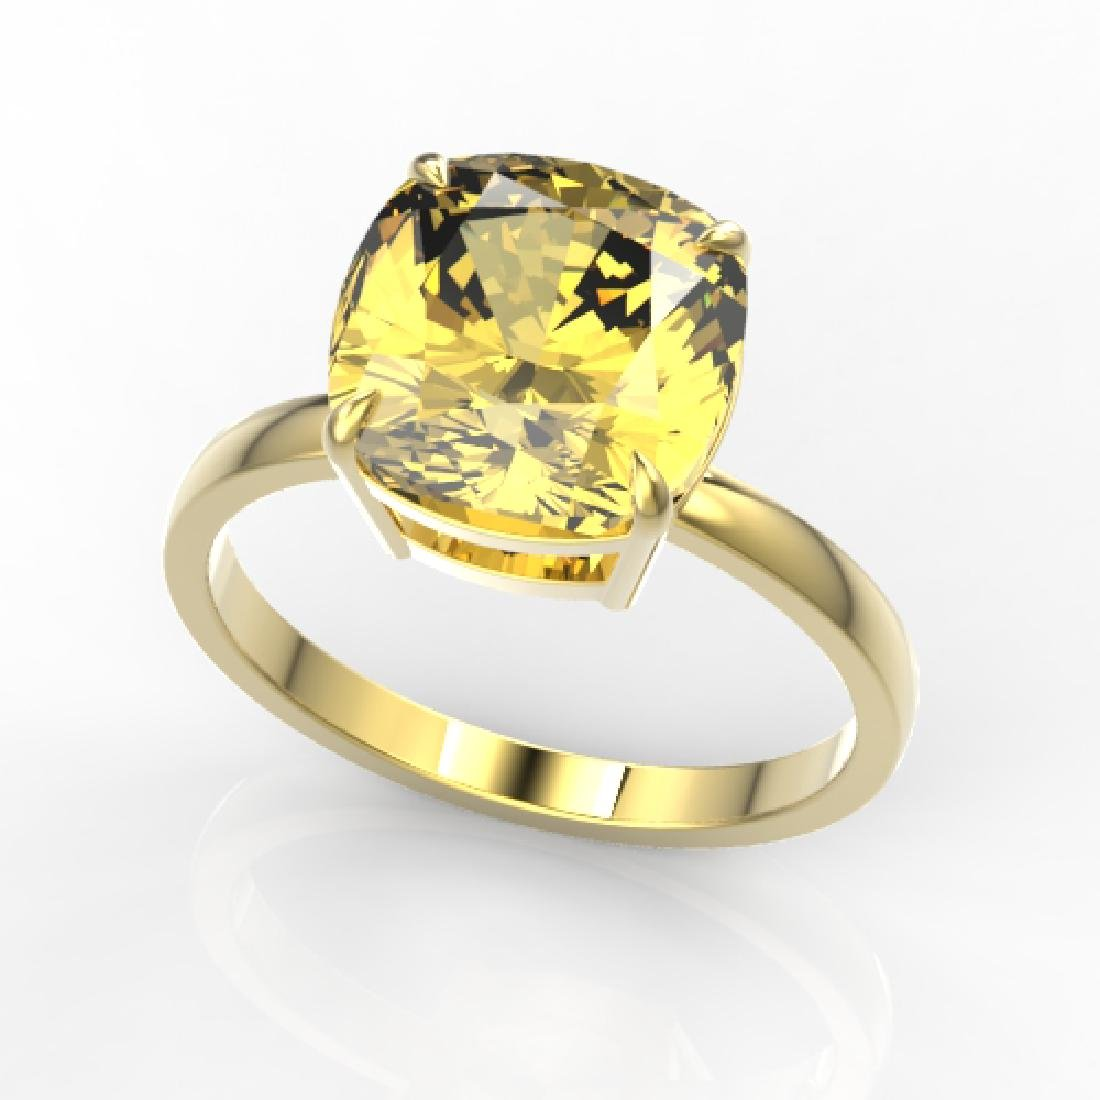 6 CTW Cushion Cut Citrine Designer Inspired Engagement - 2